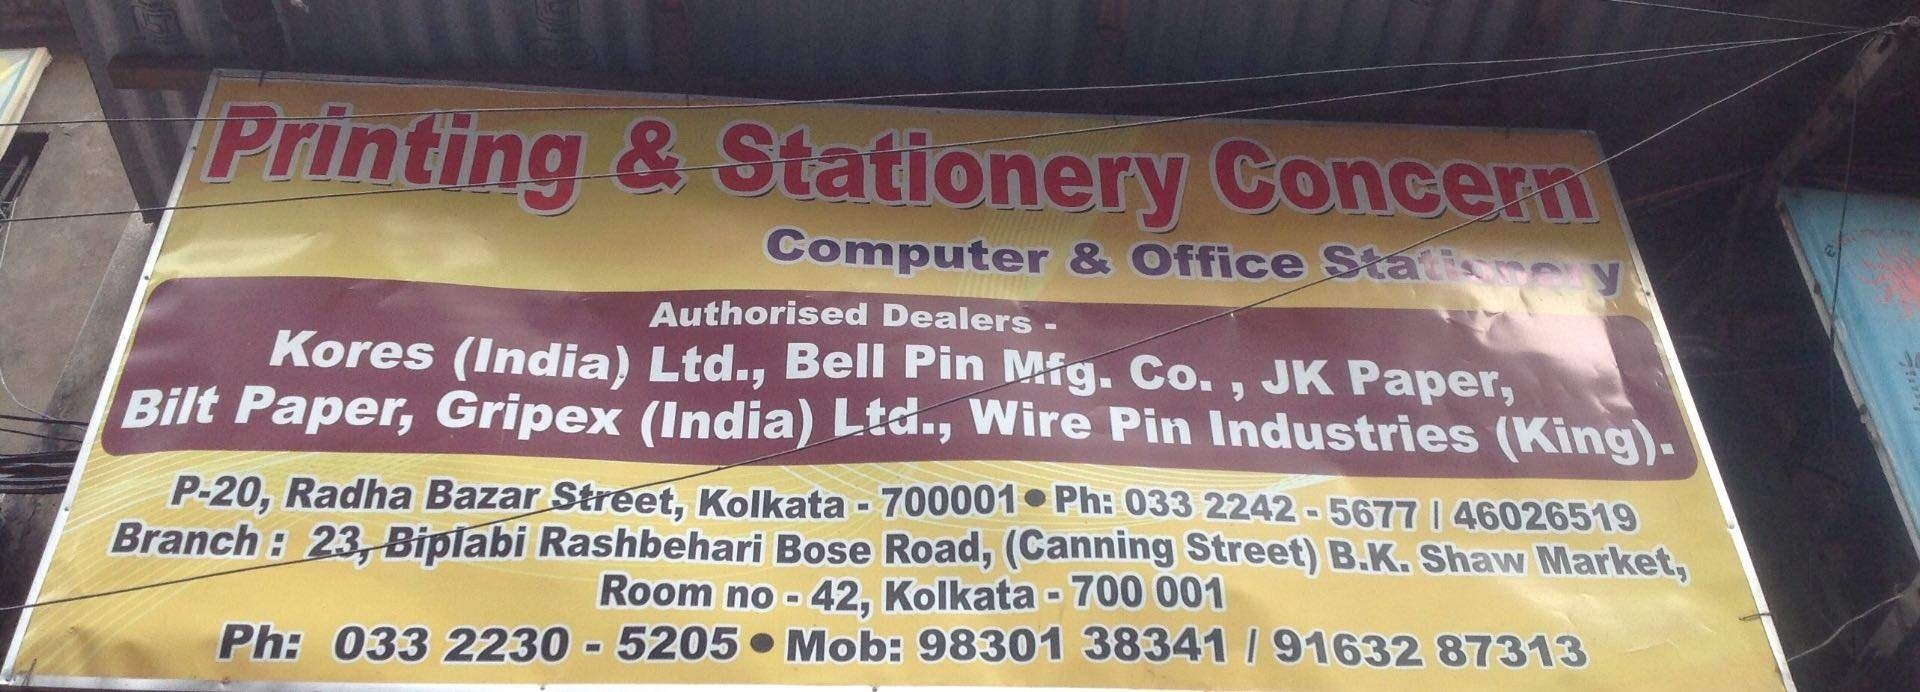 Printing Press In Bangur Avenue, Kolkata - Printing Services - Justdial_Calendar Printing Press In Kolkata